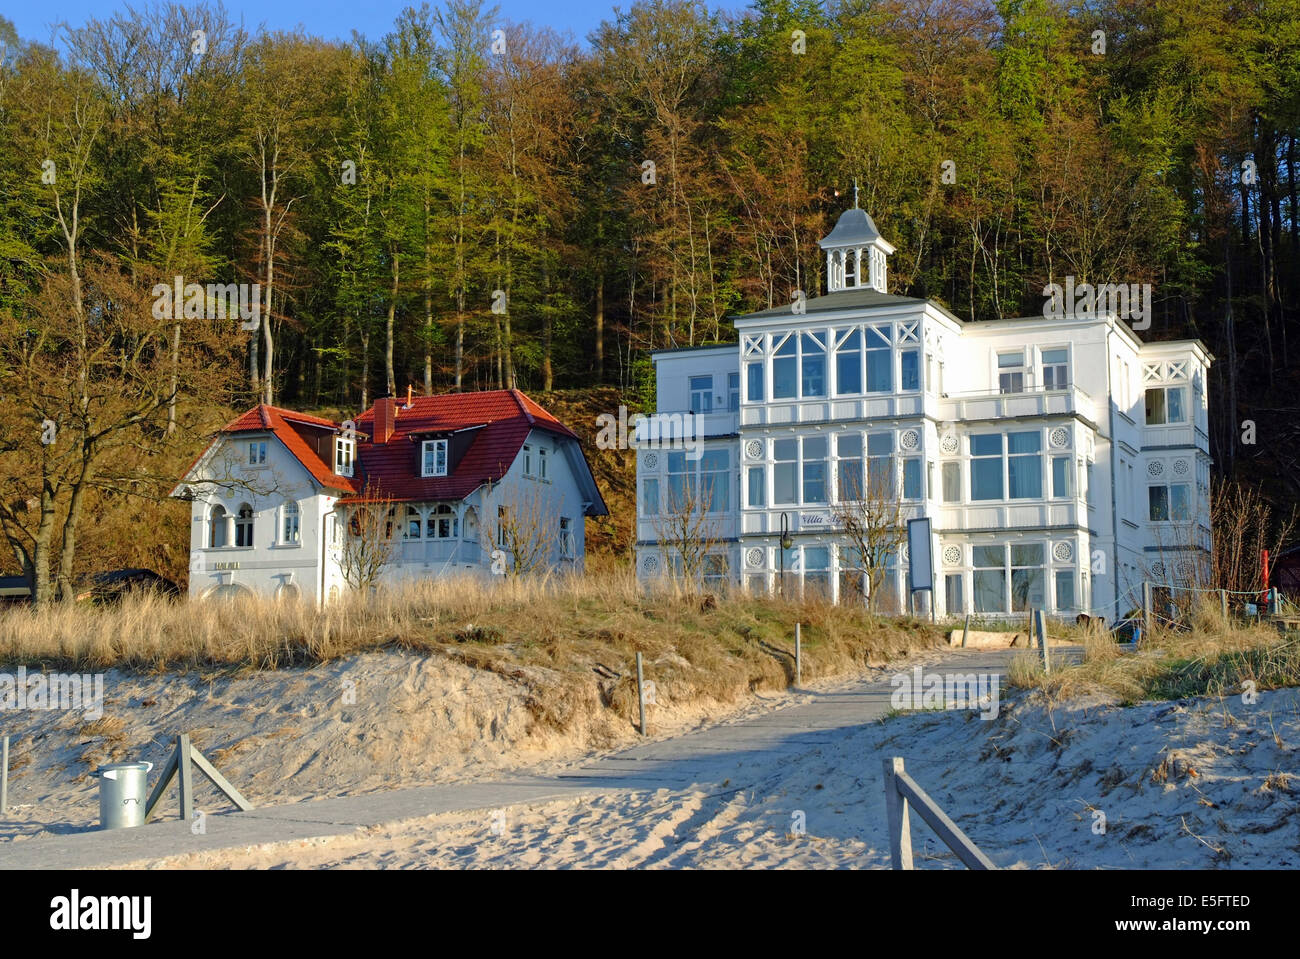 Holiday apartments in a typical white villa on Baltic Sea  -  Ruegen Mecklenburg-Western Pomerania Germany - Stock Image